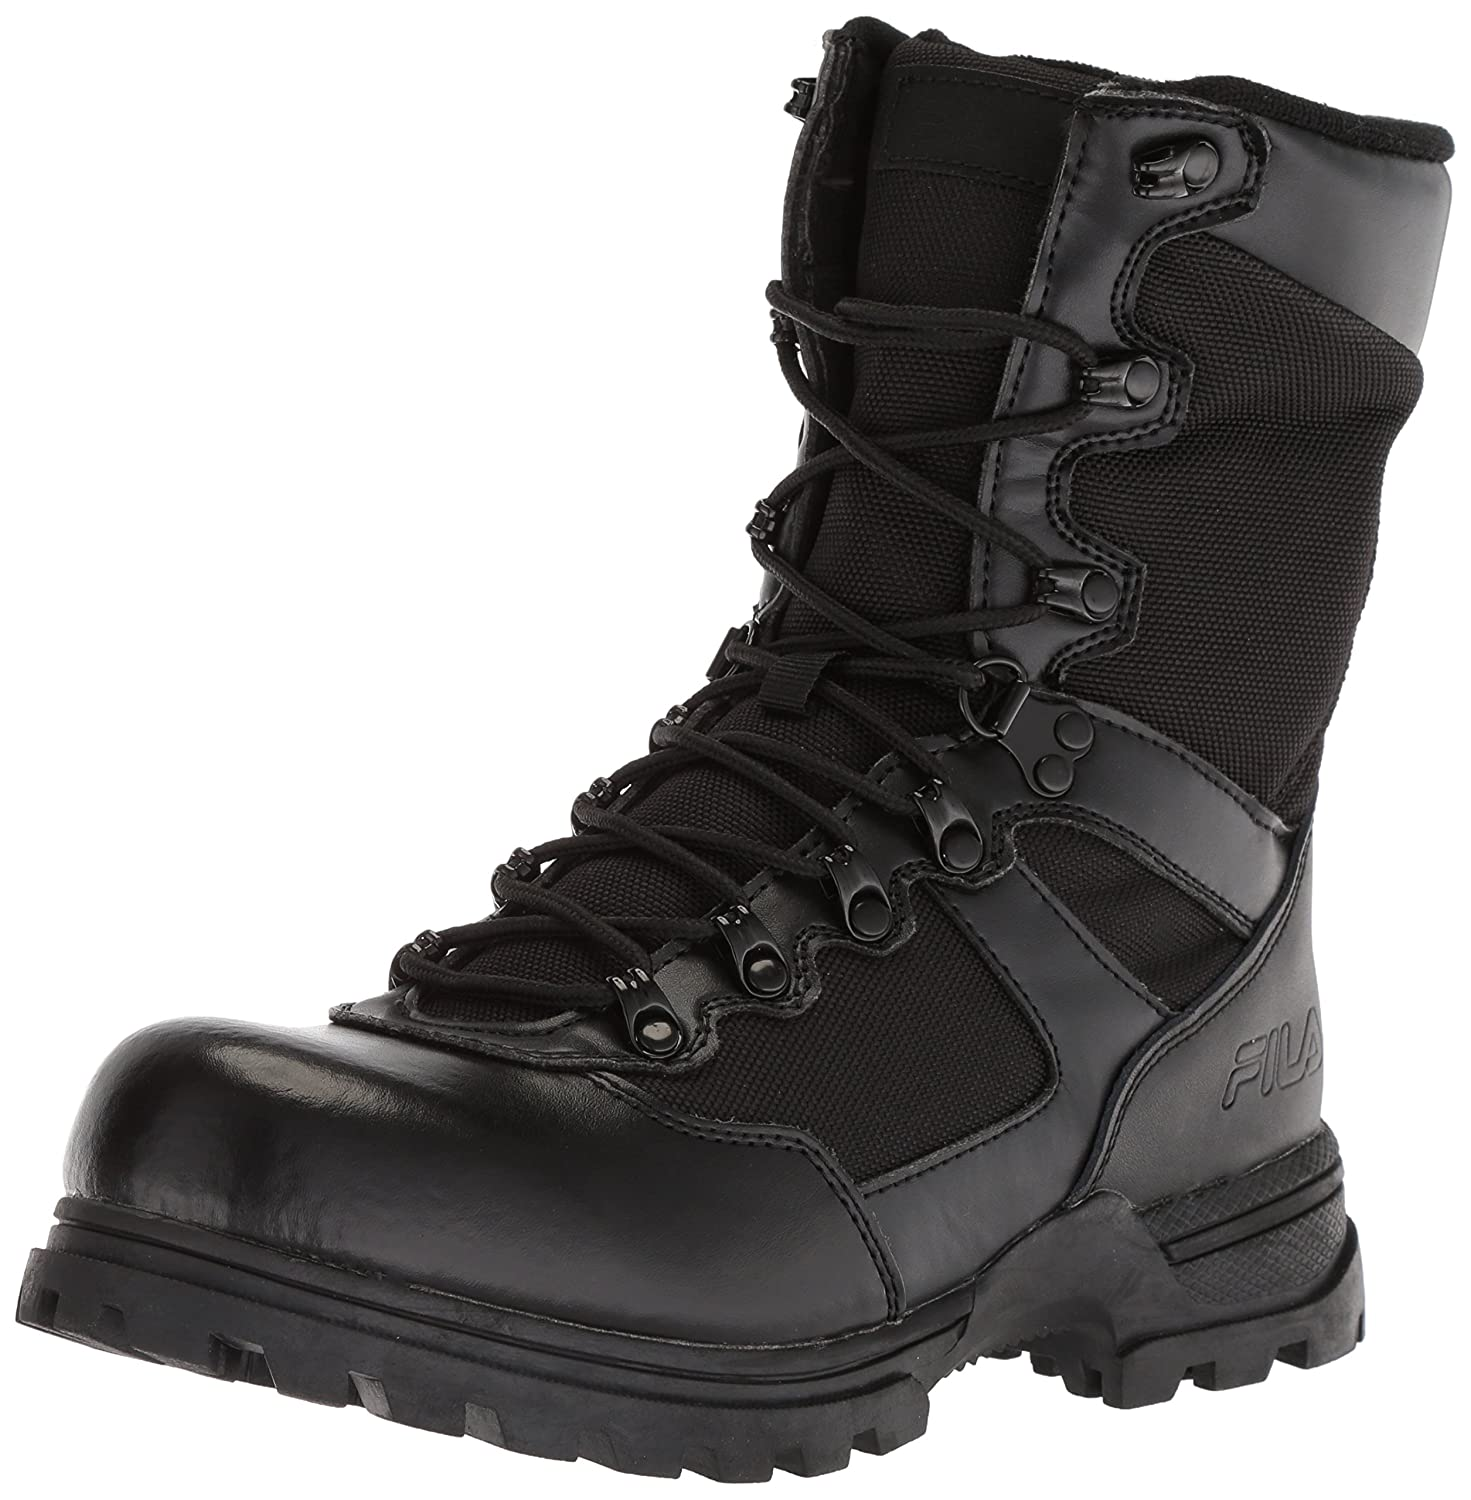 7040803f3d Fila Men's Stormer Military and Tactical Boot Food Service Shoe